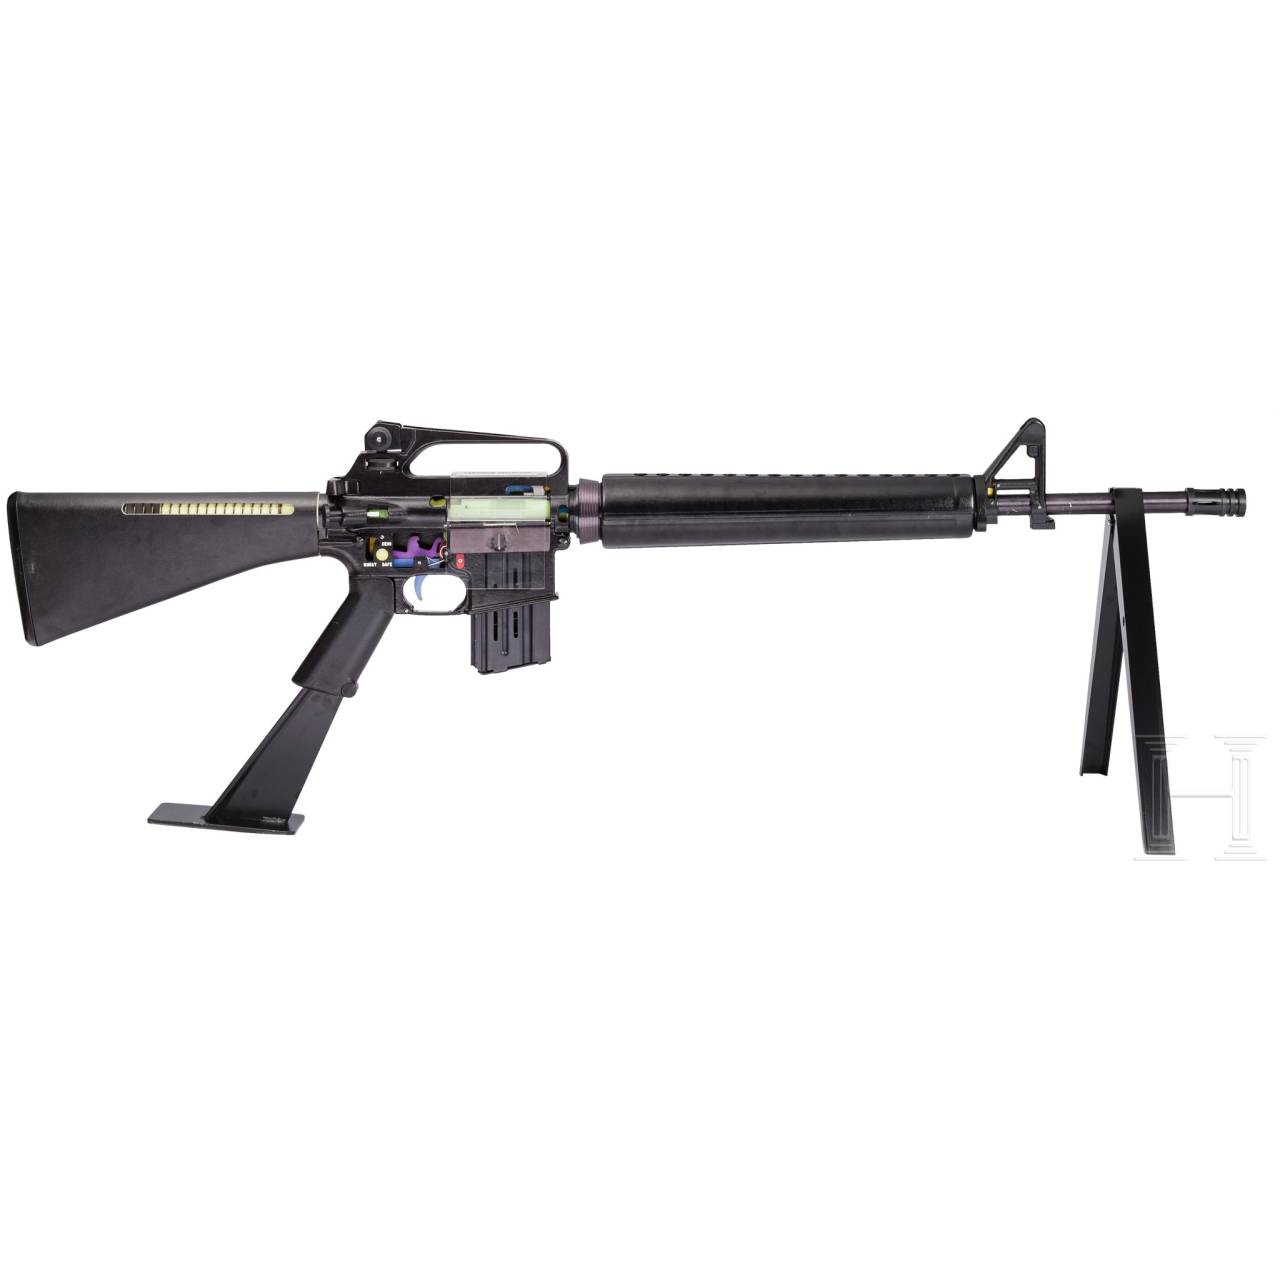 A 2:1 oversized M16 A2 trainings model of the US Army